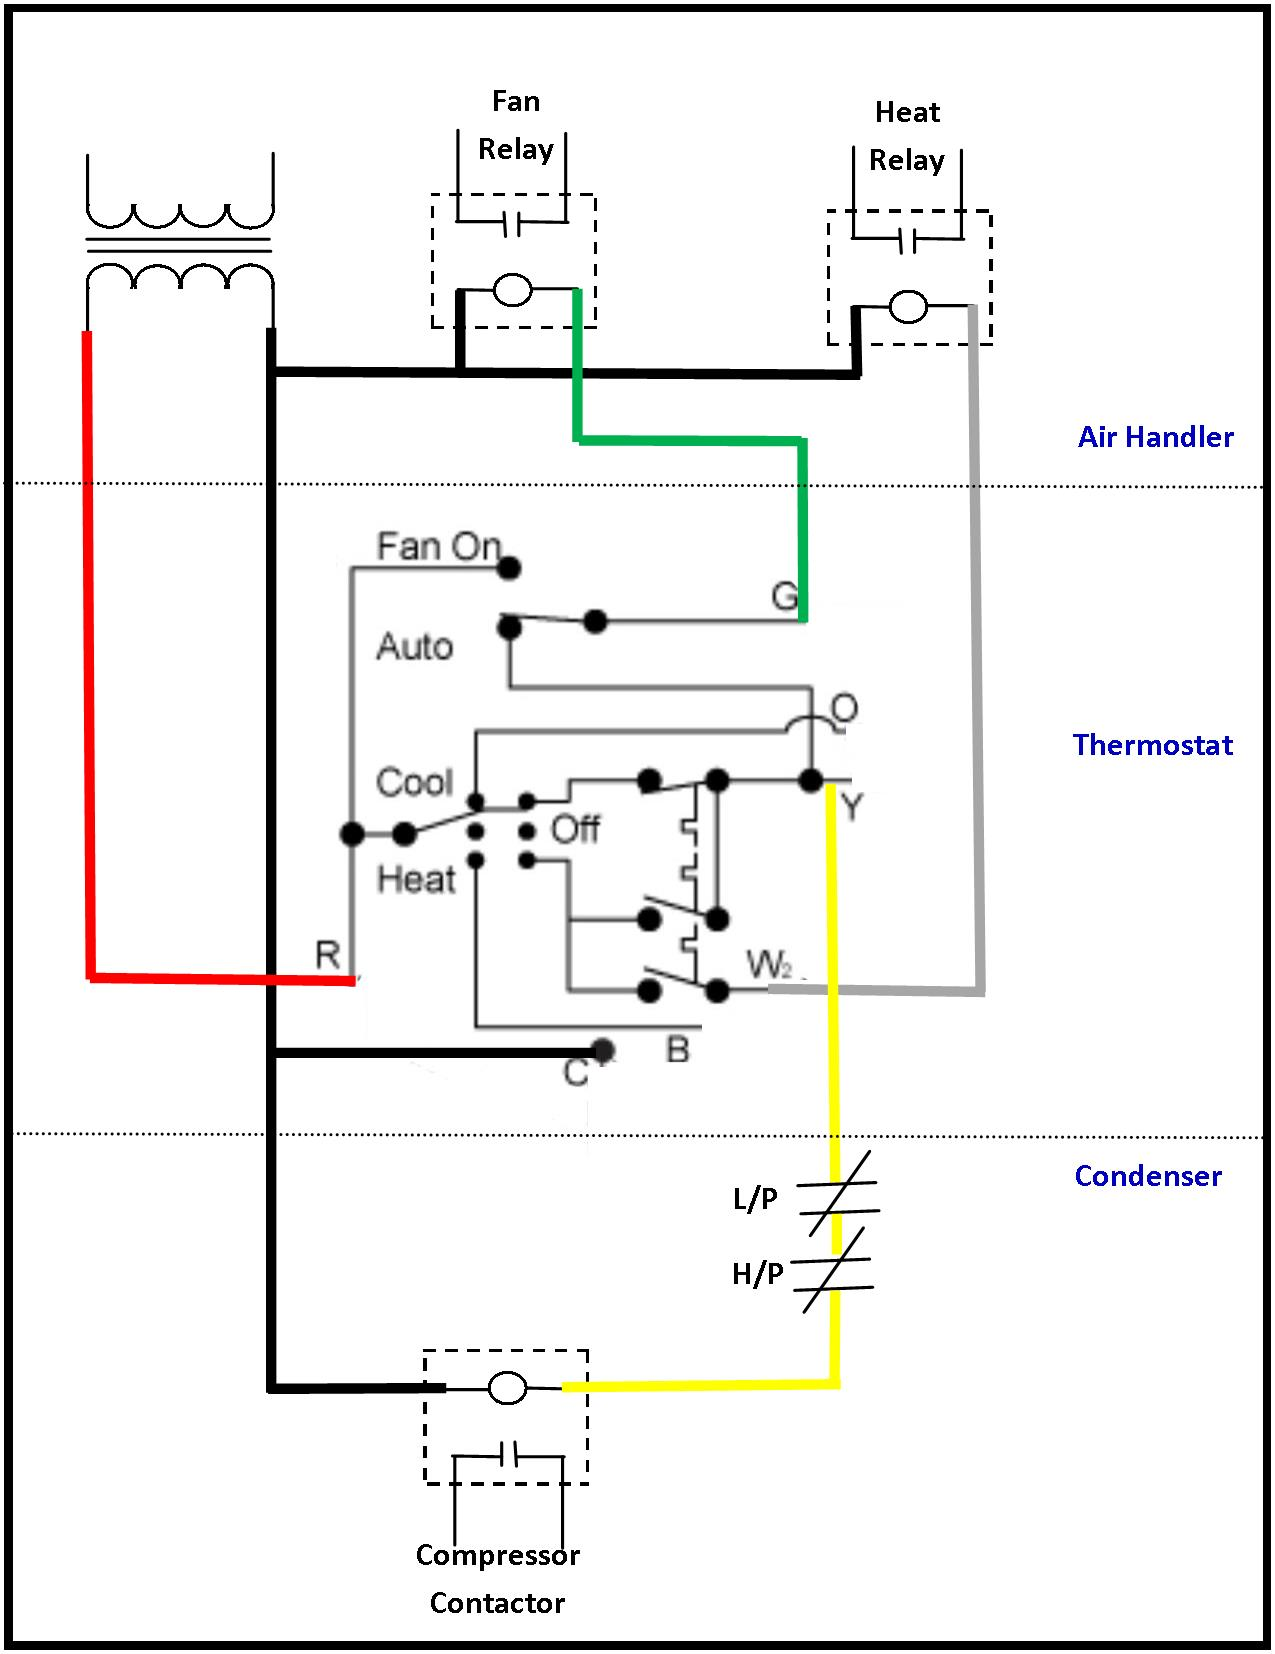 Temperature Control Diagram Blog All Kind Of Wiring Diagrams Co2 Sensor Correct Compressor Total Performance Diagnostic For The Hvac Industry Phase Engine Circuit